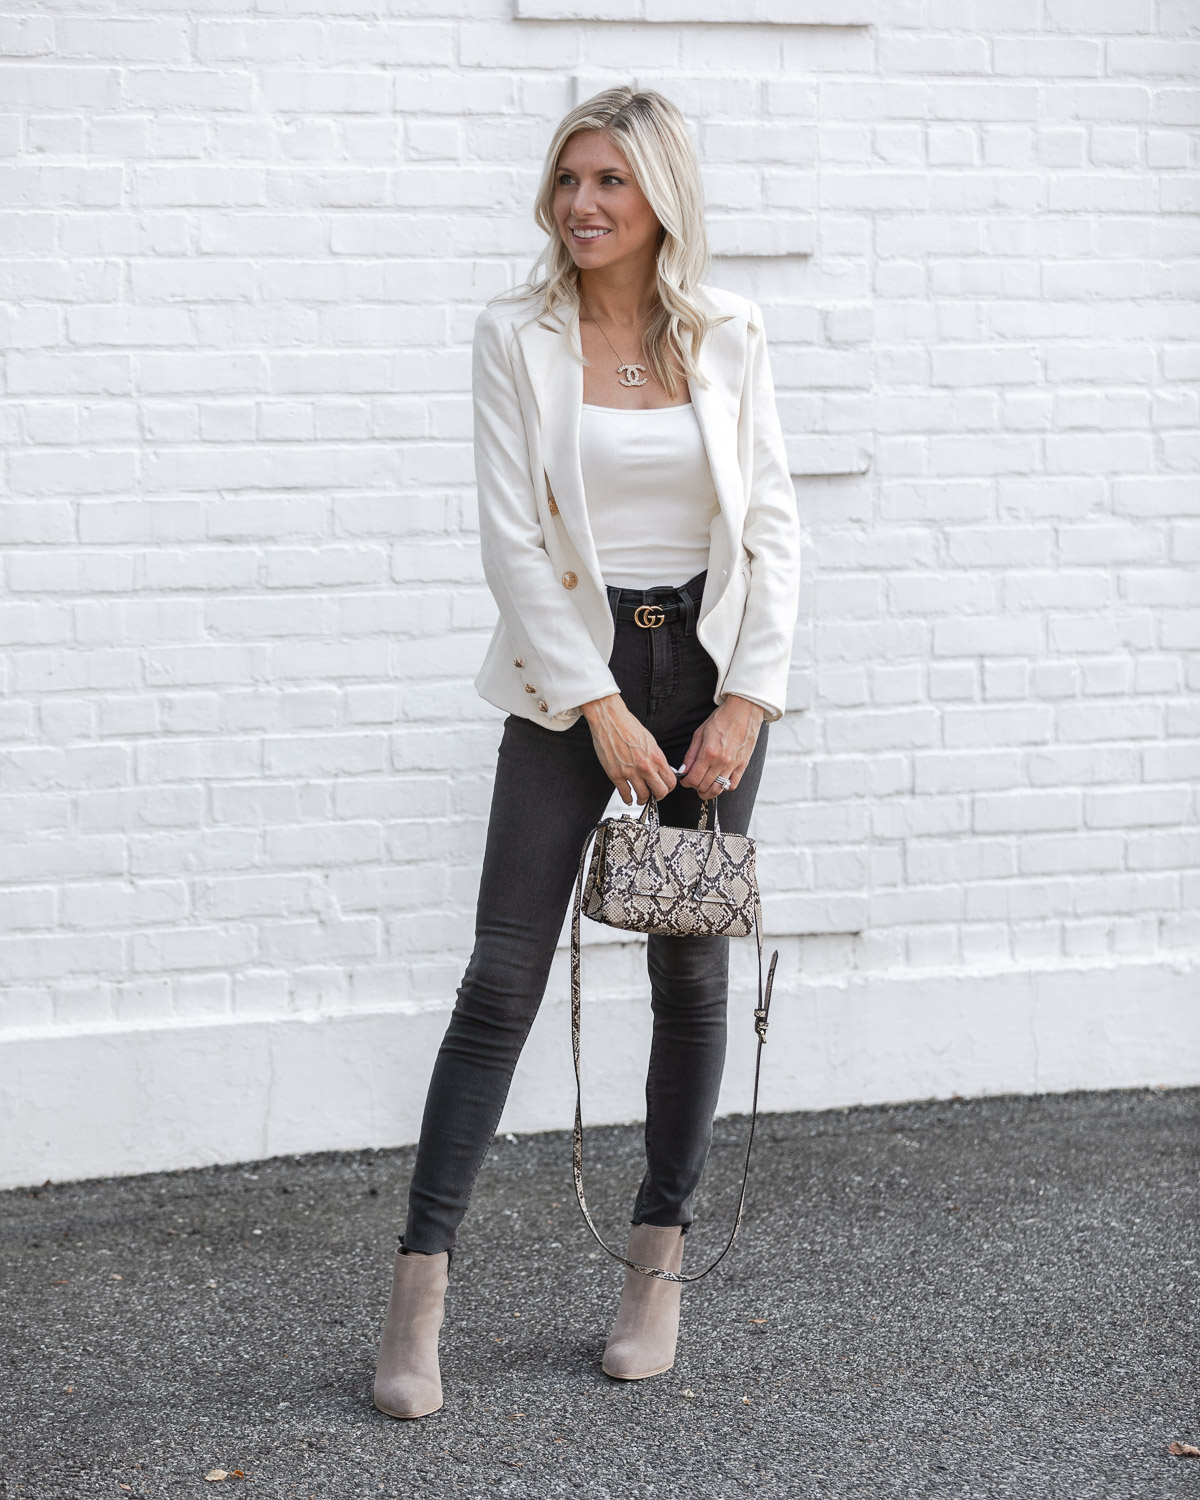 white blazer and body suit perfect for work or play The Glamorous Gal